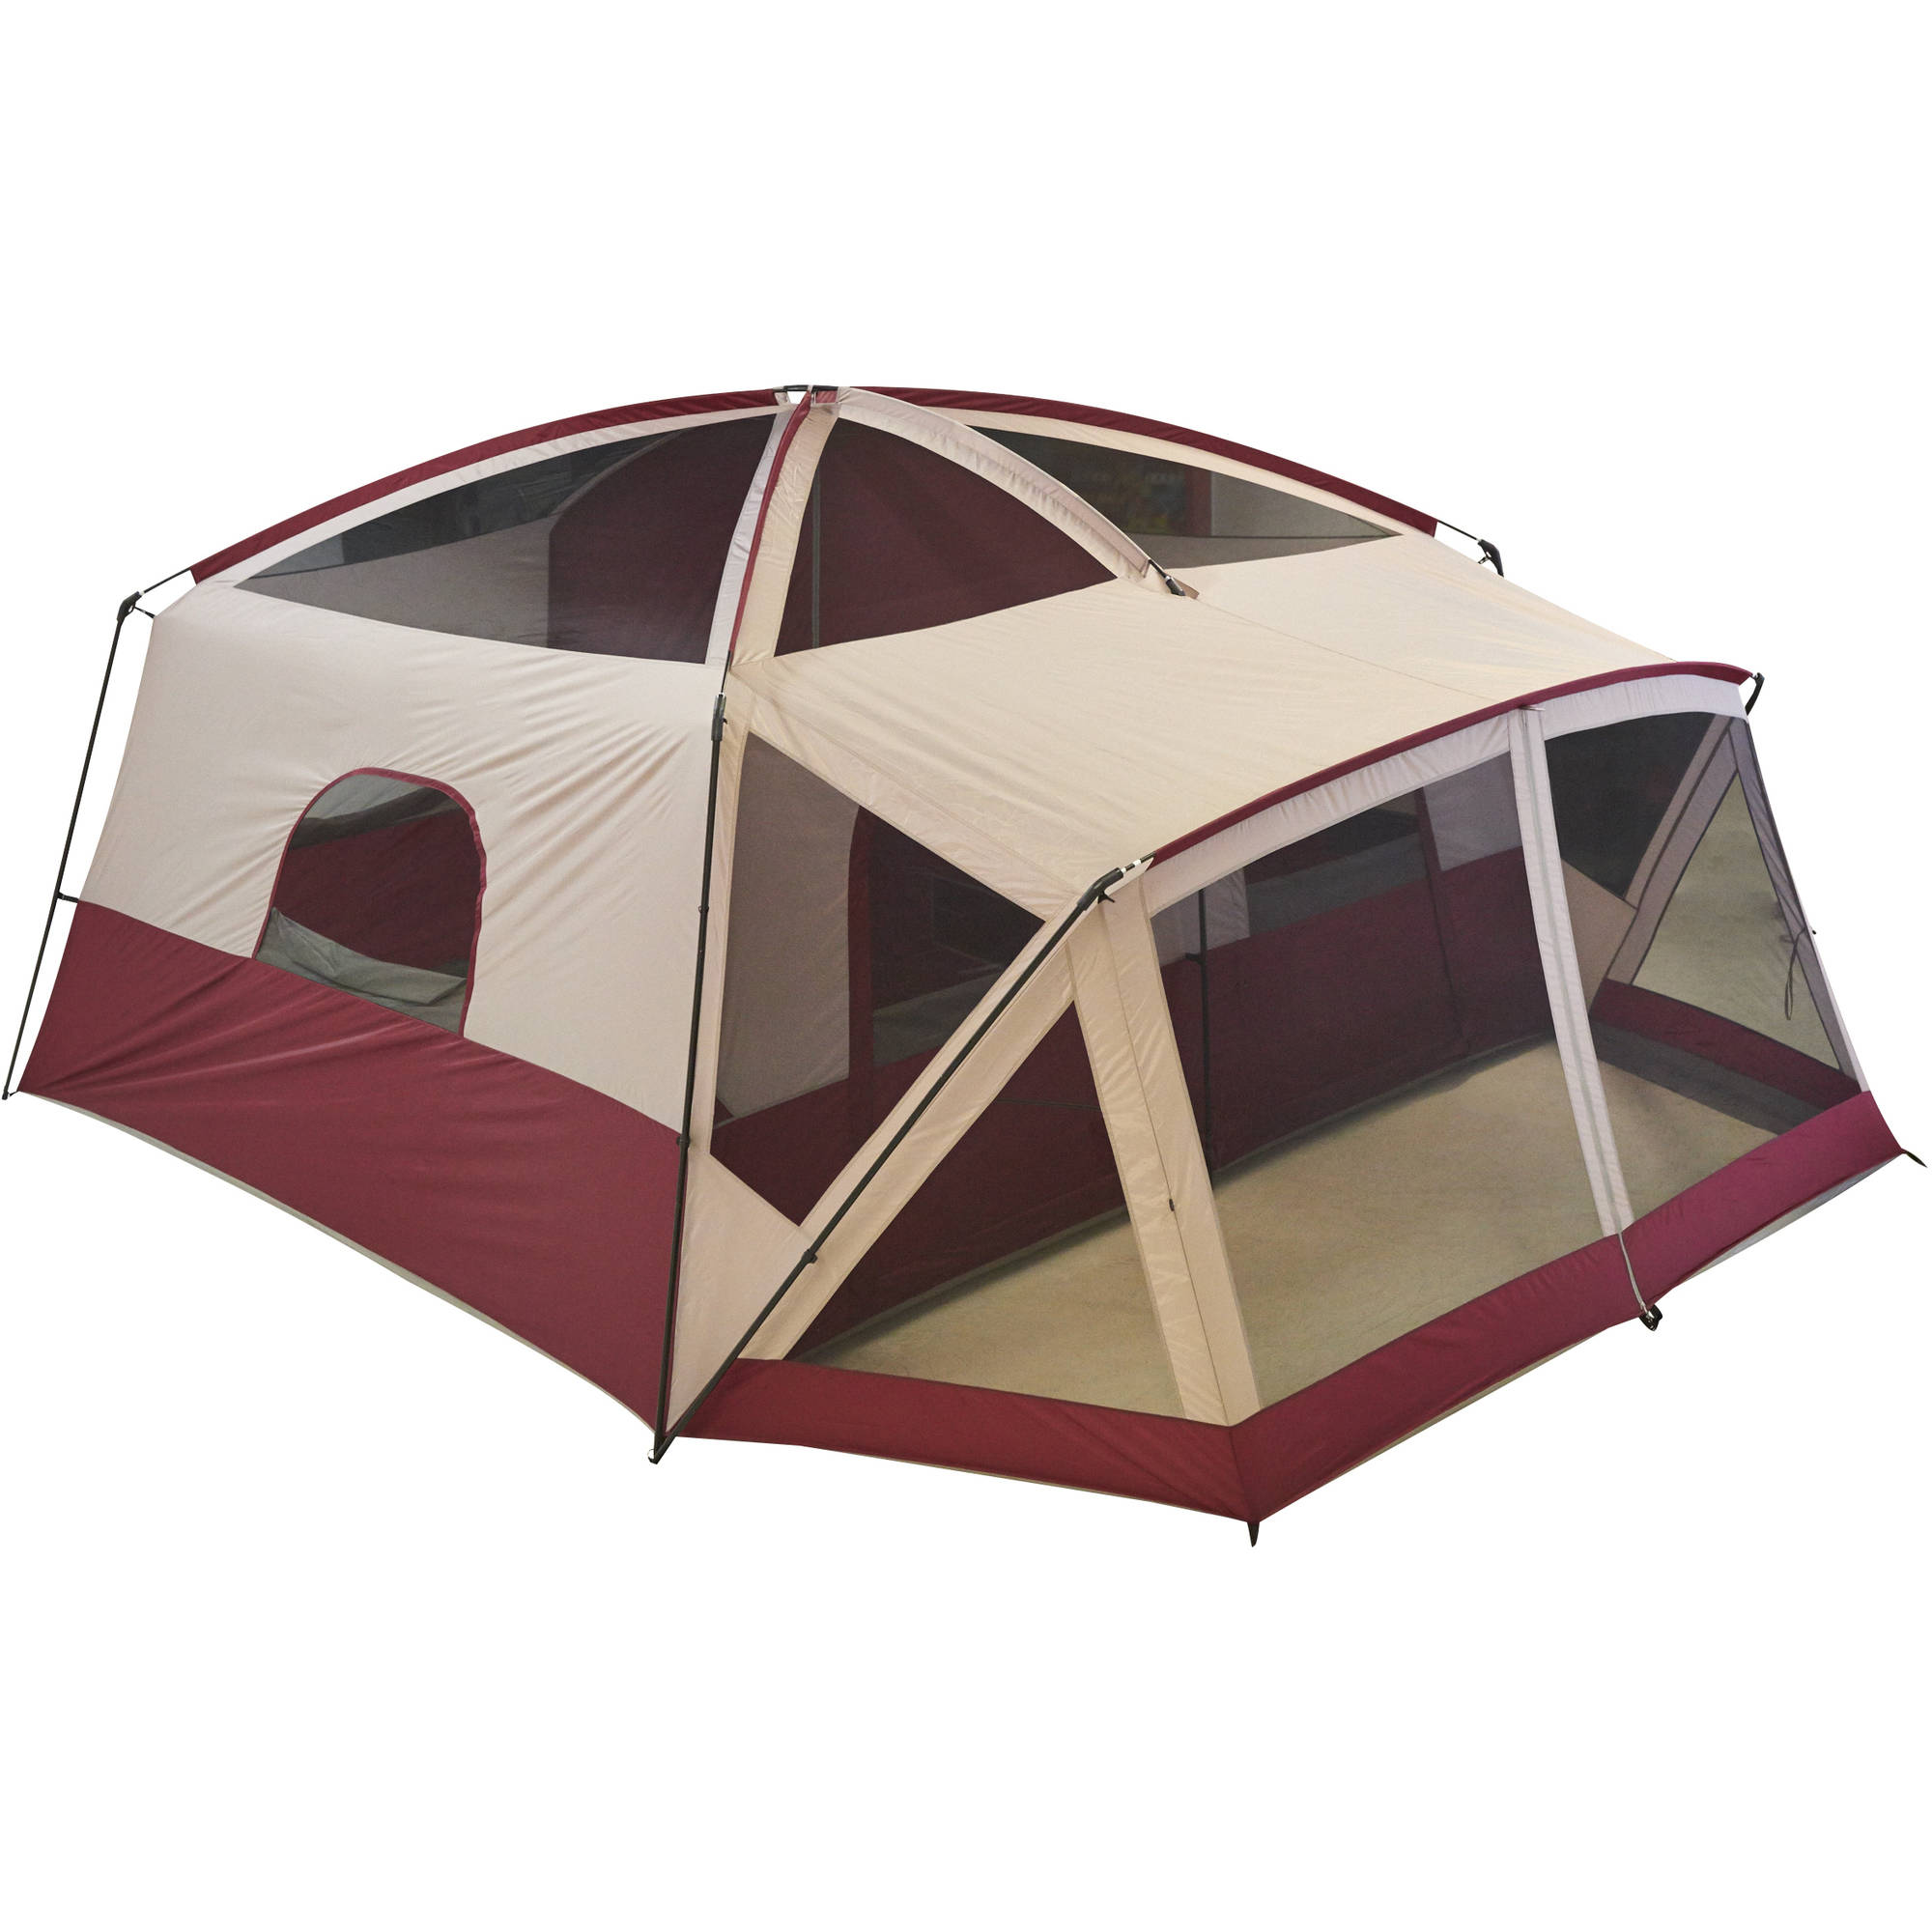 Ozark Trail 12-Person Cabin Tent with Screen Porch Image 2 of 5  sc 1 st  Walmart & Ozark Trail 12-Person Cabin Tent with Screen Porch - Walmart.com